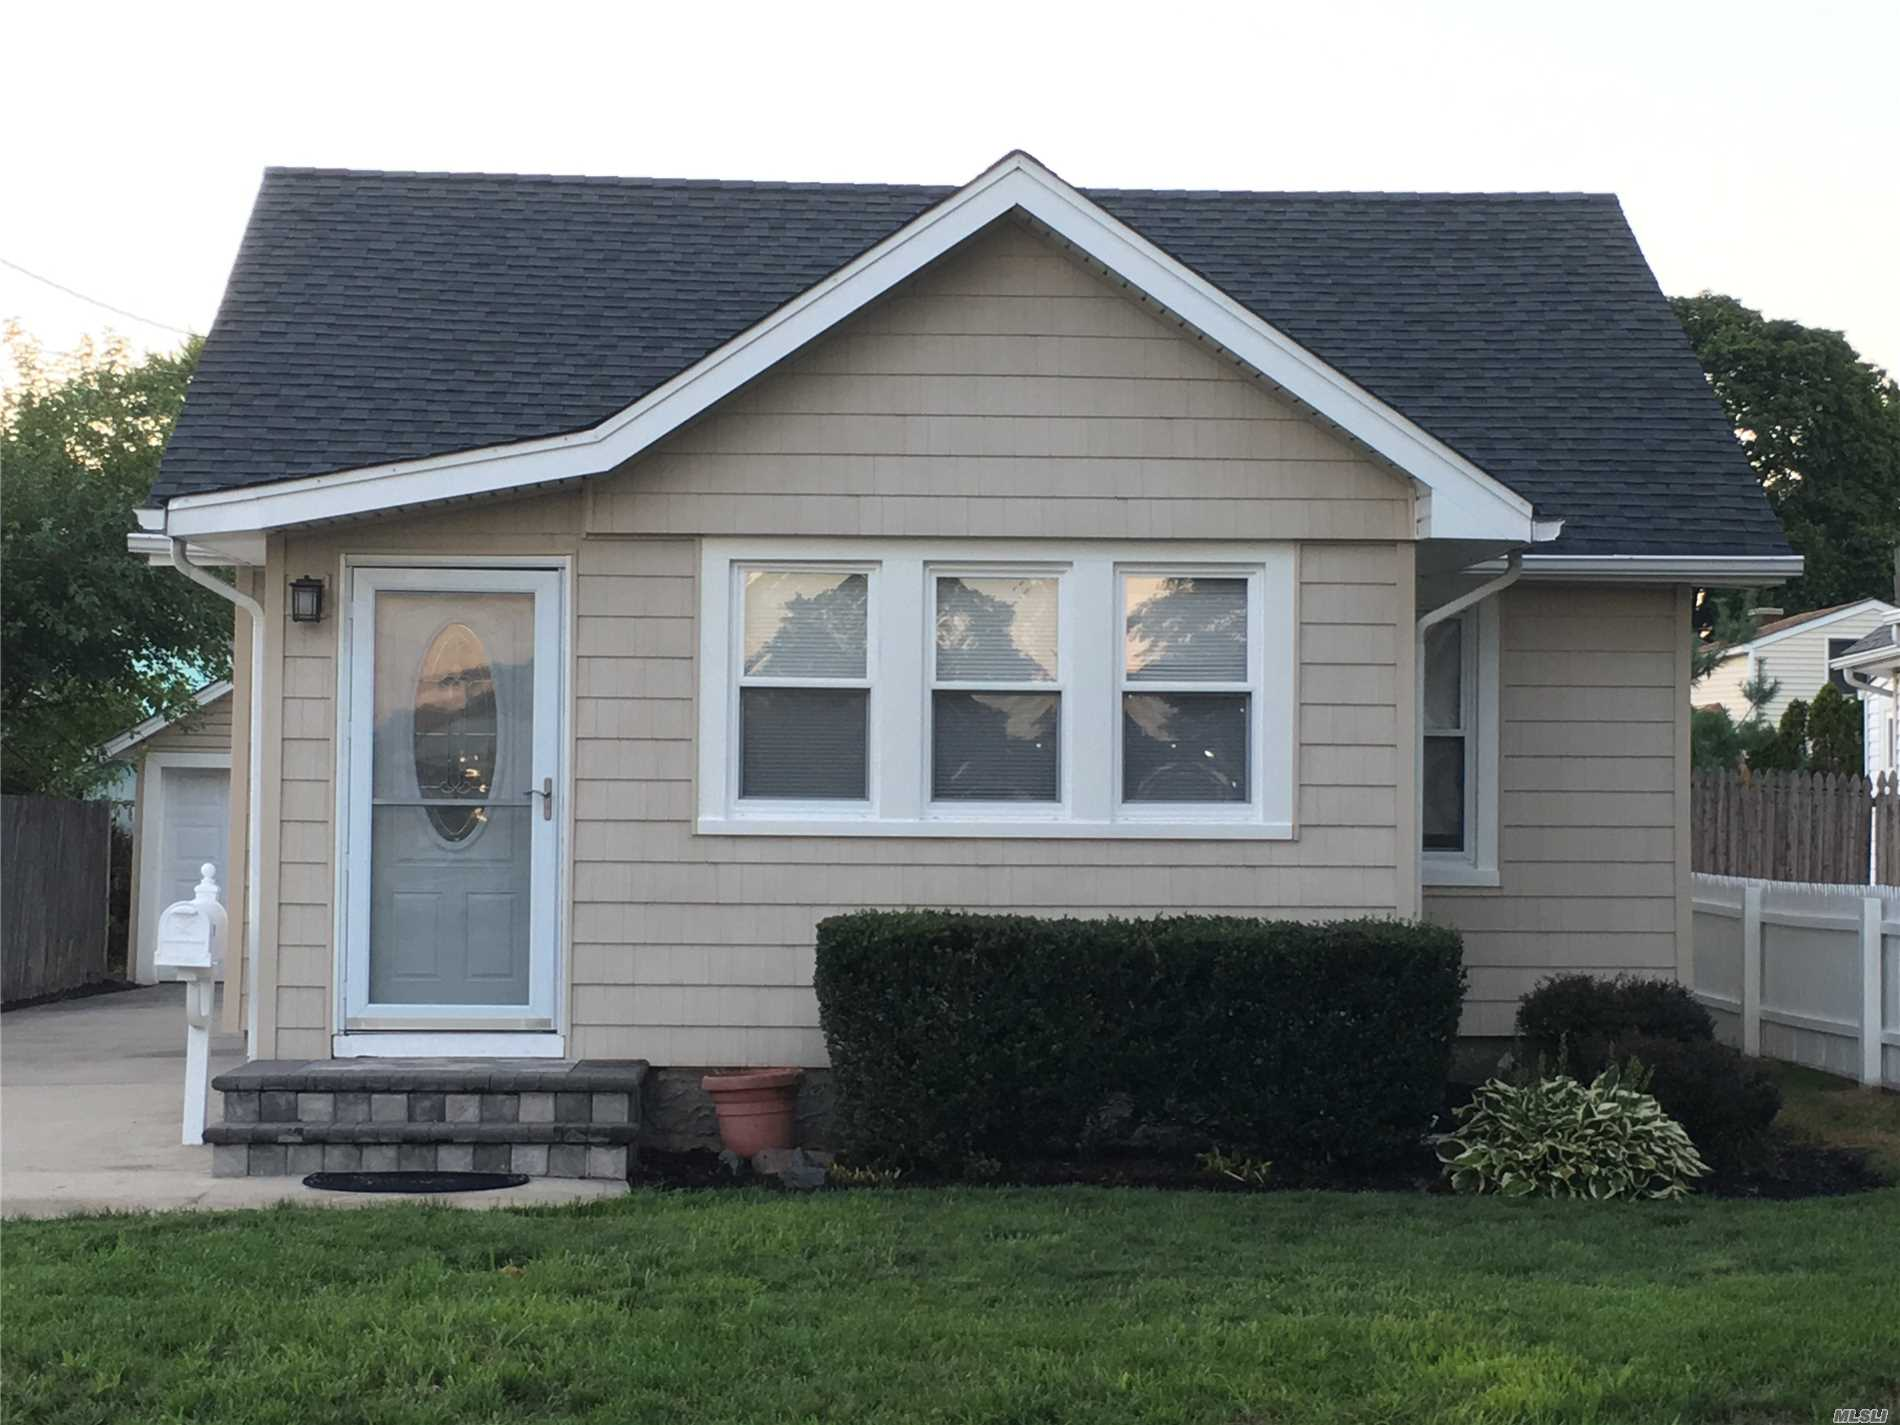 Move Right Into This Light And Bright Home, Complete With Washer And Dryer, Oversized Garage, Private Driveway And Backyard. This Home Features An Open Floor Plan, And Is Close To All - Transportation, Hospitals, Shopping And Restaurants. Note: Pictures Depict The Home When Vacant - Currently Rented. No Pets. As Per Town Of Brookhaven Rental Permit, Maximum Occupancy Is 2 Persons.